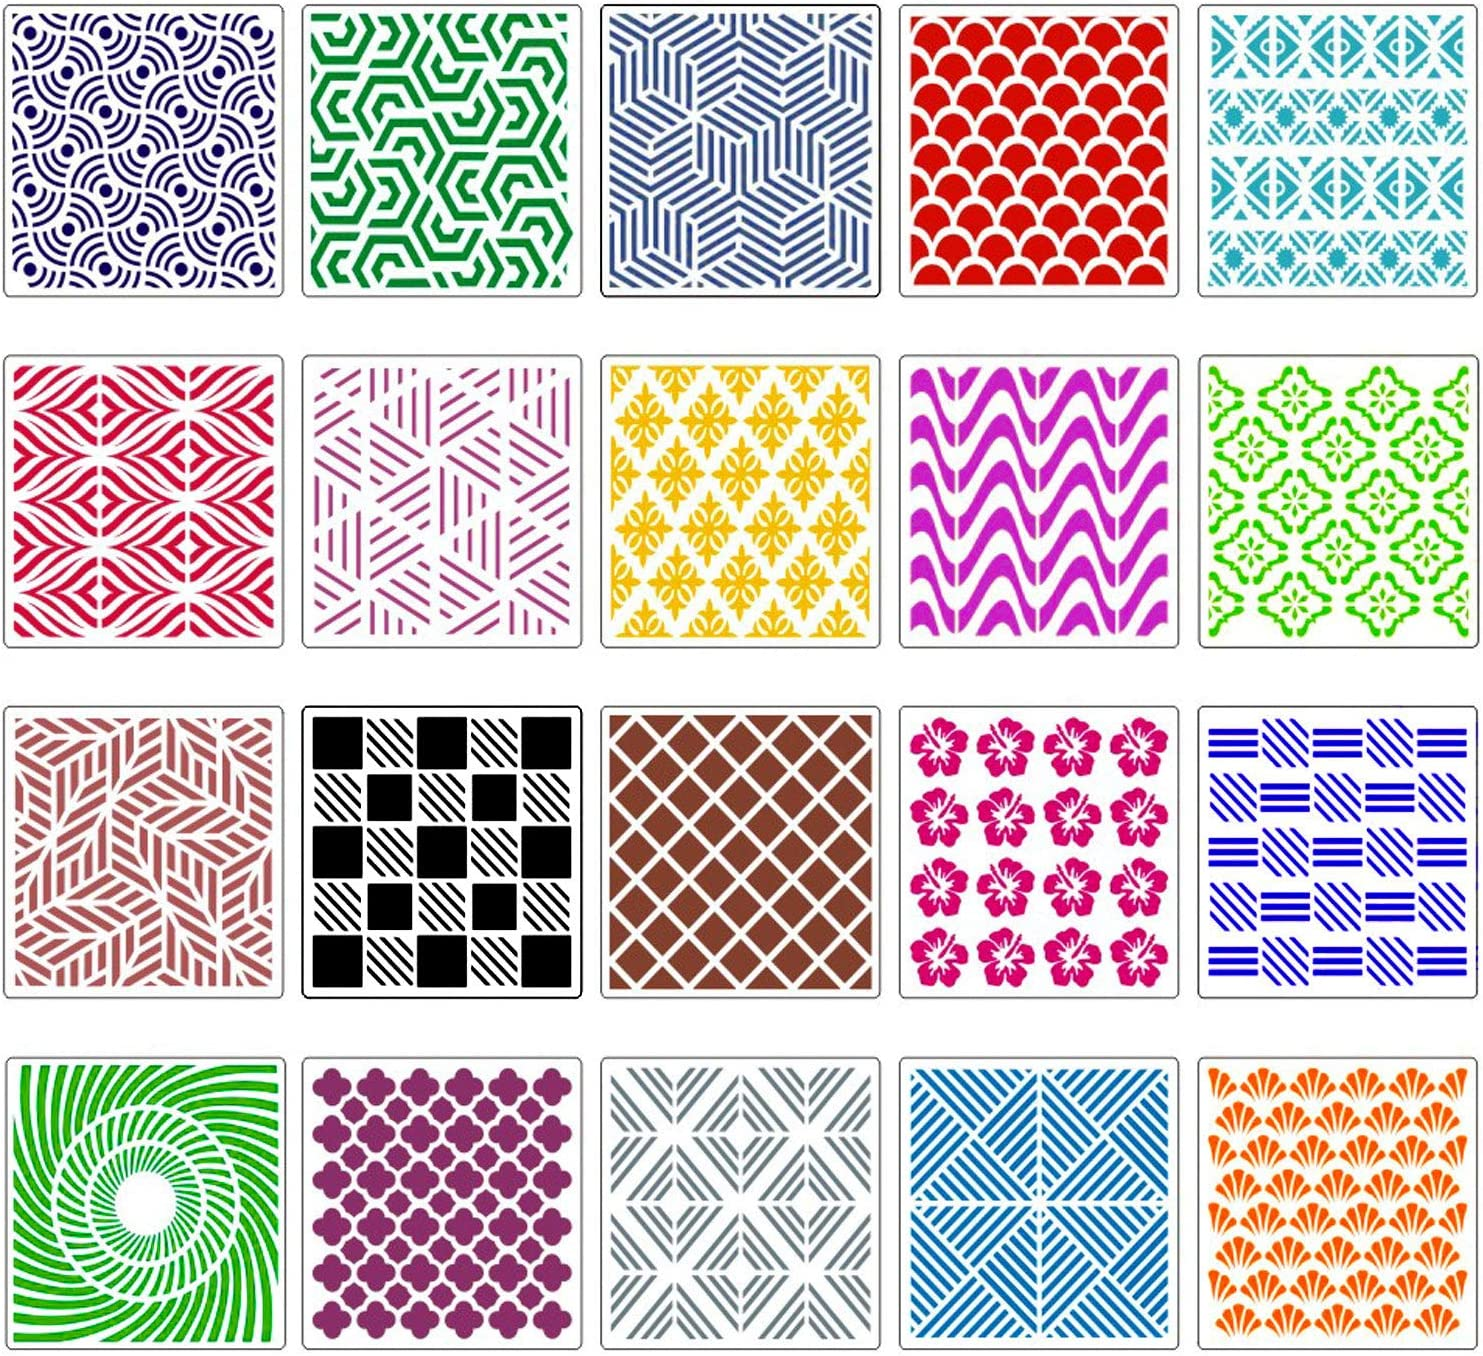 20-Pack Geometric Stencils 8 x 8 Inch Painting Templates for Scrapbooking Cookie Tile Furniture Wall Floor Decor Craft Drawing Tracing DIY Art Supplies